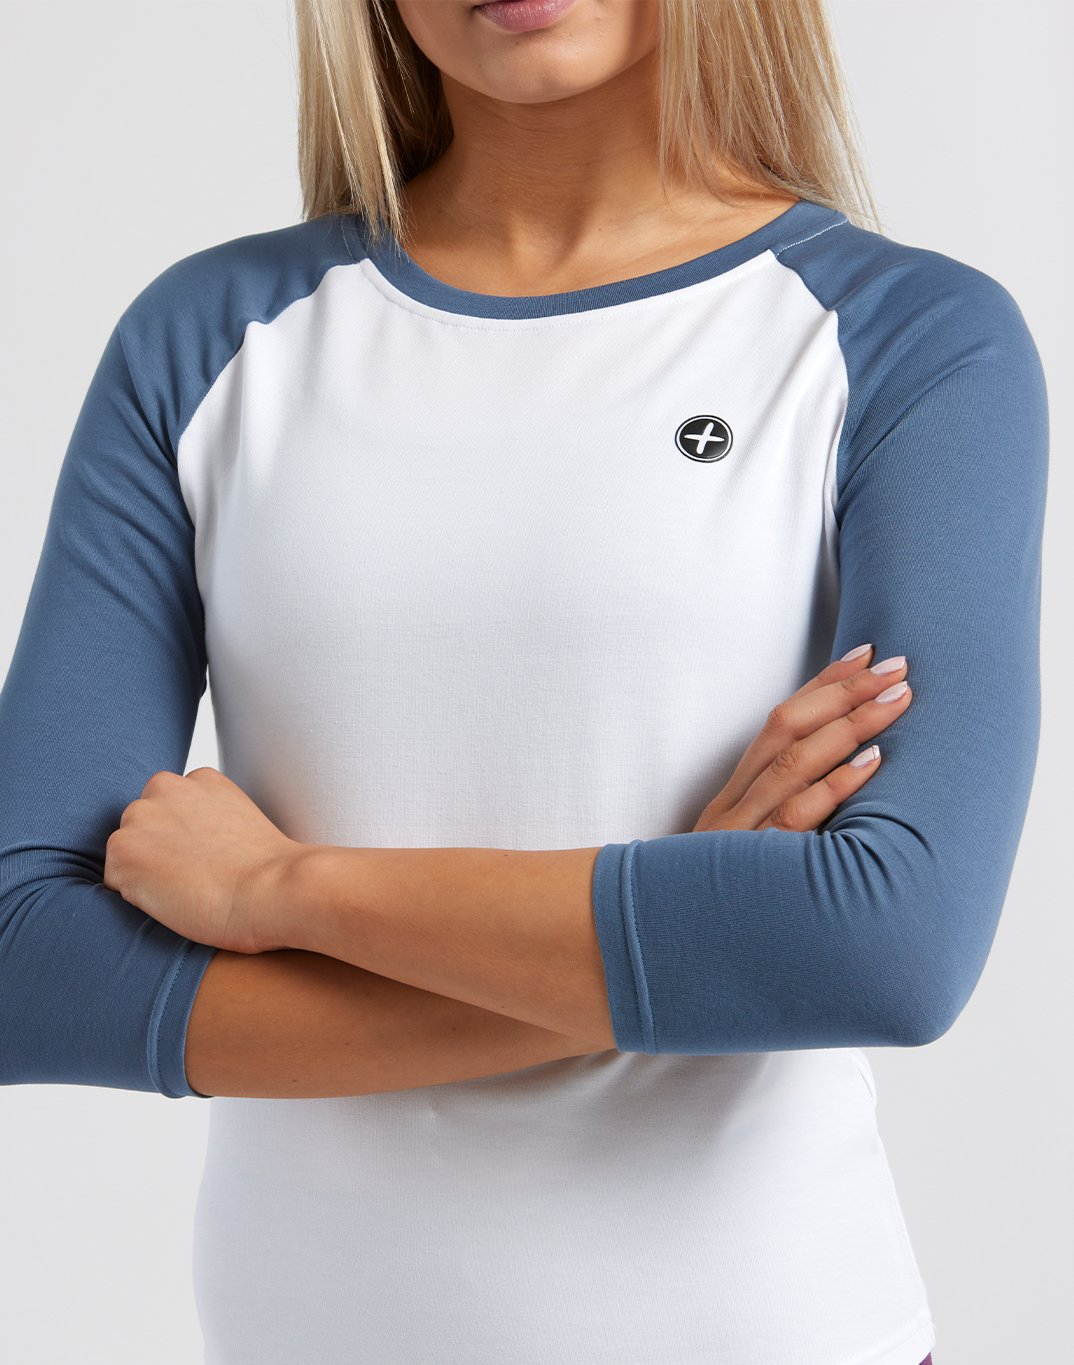 Gym Plus Coffee T-Shirt Womens Home Run Tee in Metal Blue/White Designed in Ireland